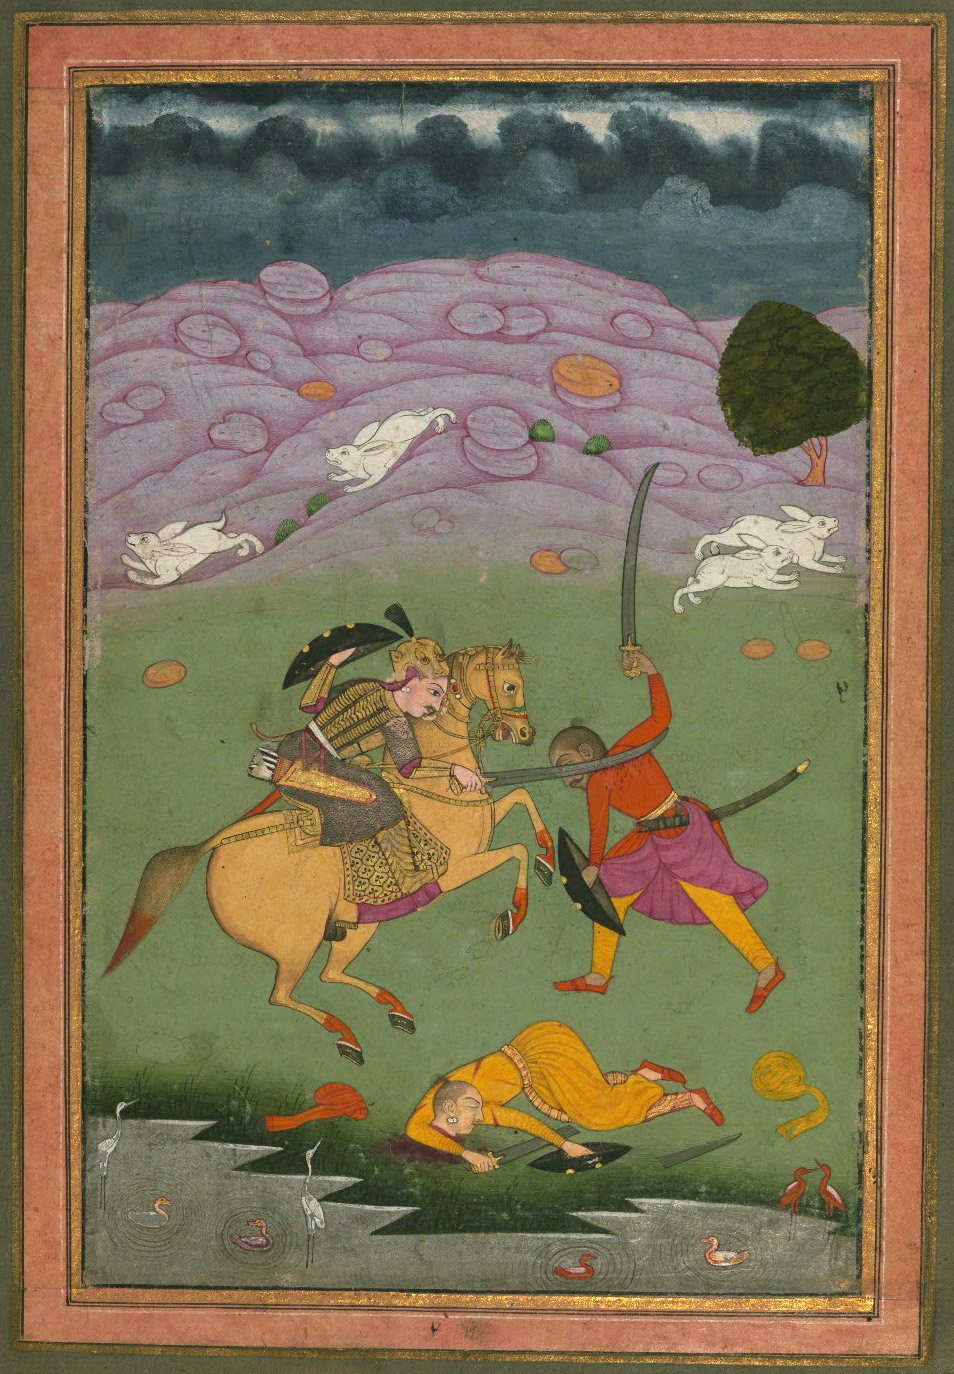 Nata ragini - Miniature Painting, Ragamala Series, 19th Century